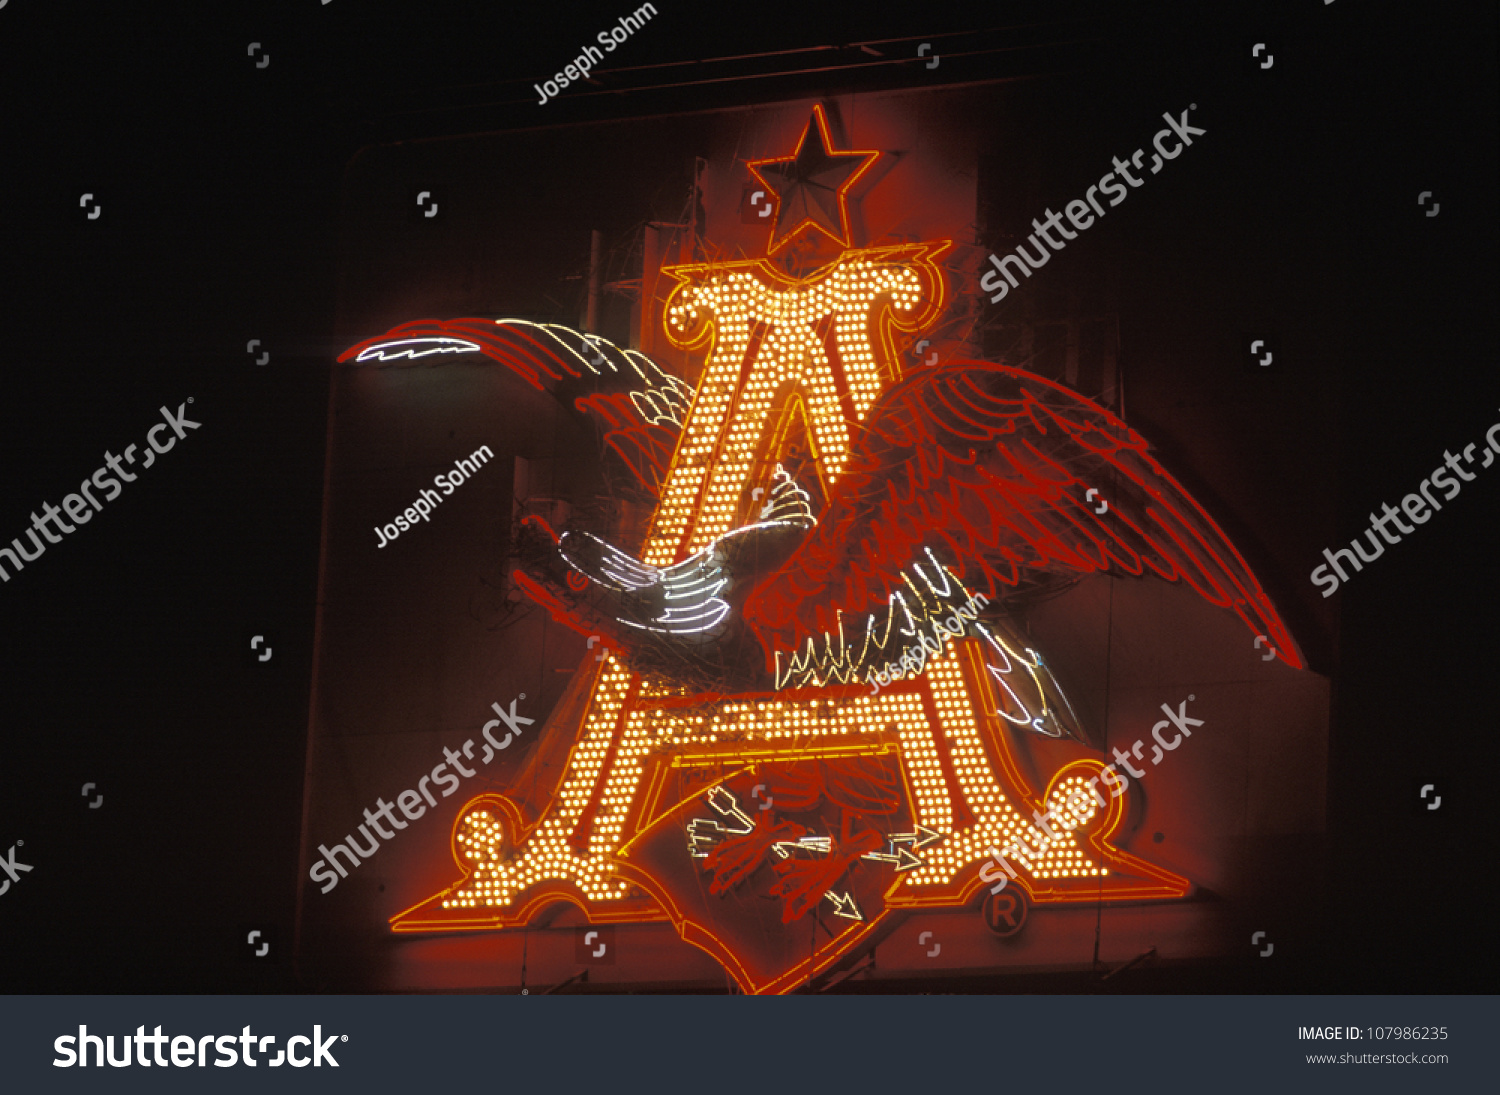 Neon Sign Showing Anheuser Busch Logo Stock Photo Edit Now